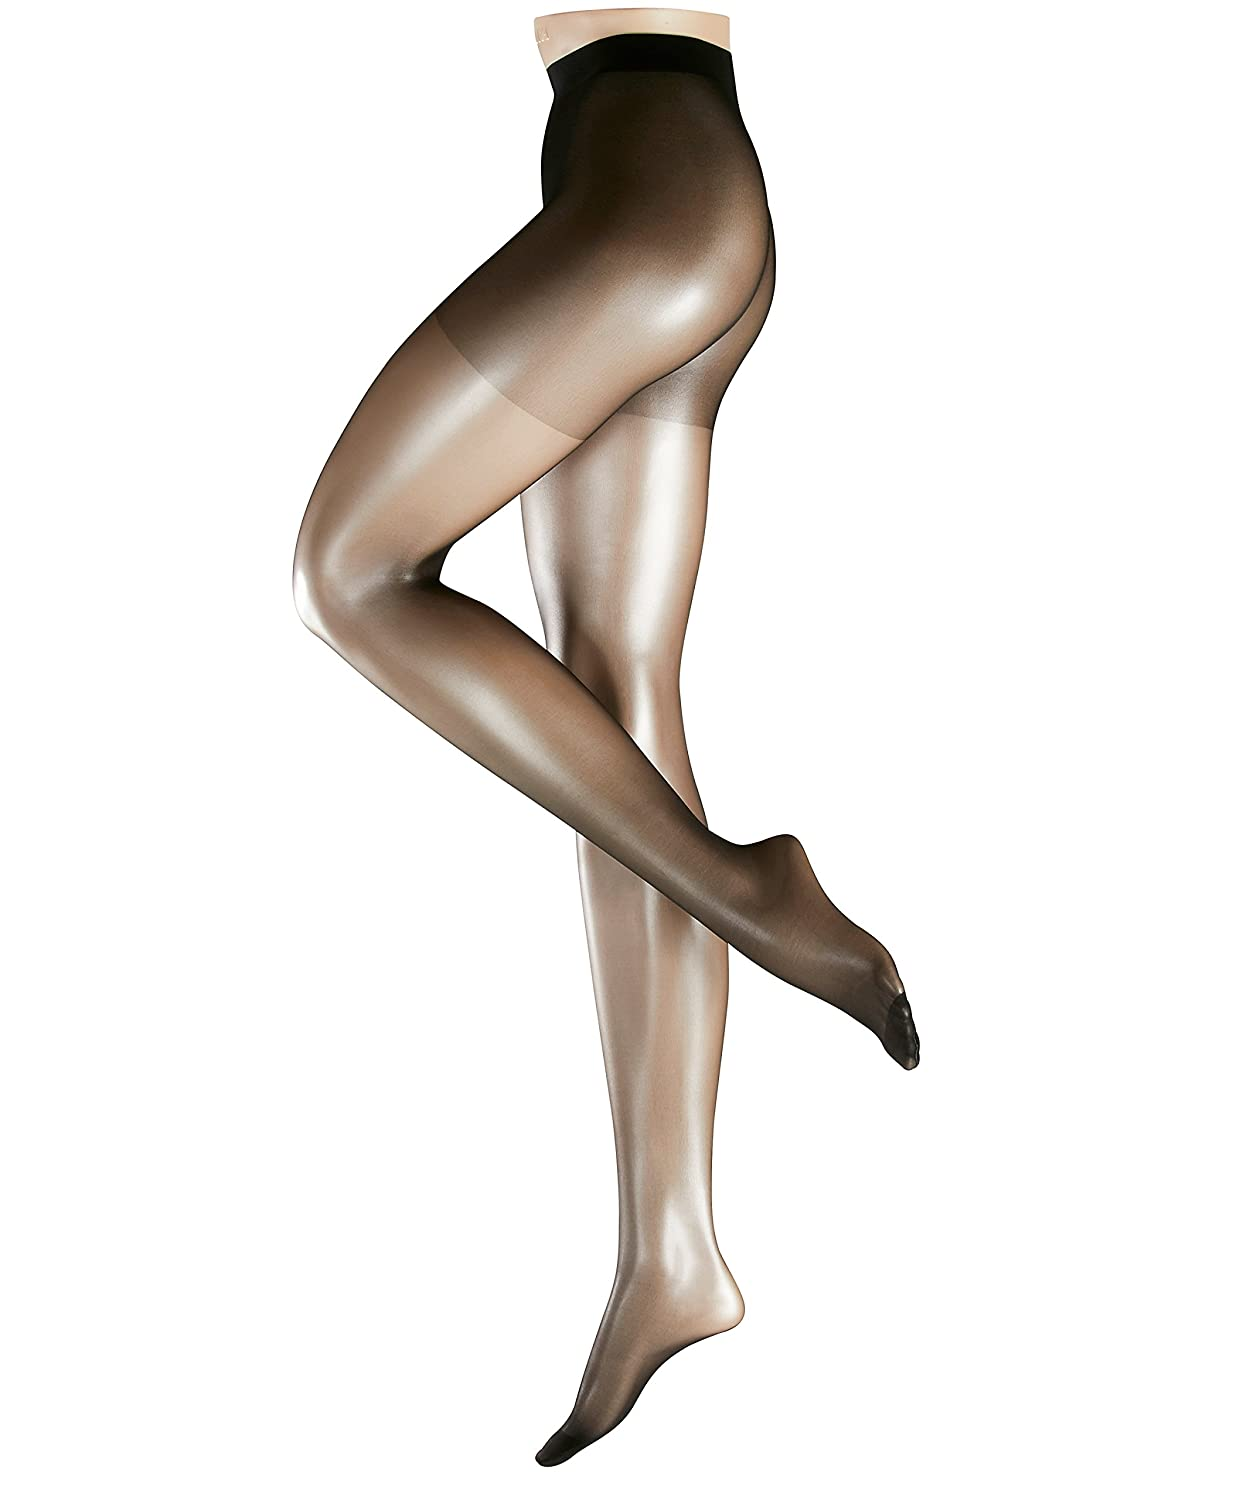 Falke Invisible Deluxe 8 Thigh Highs Hosiery Women/'s